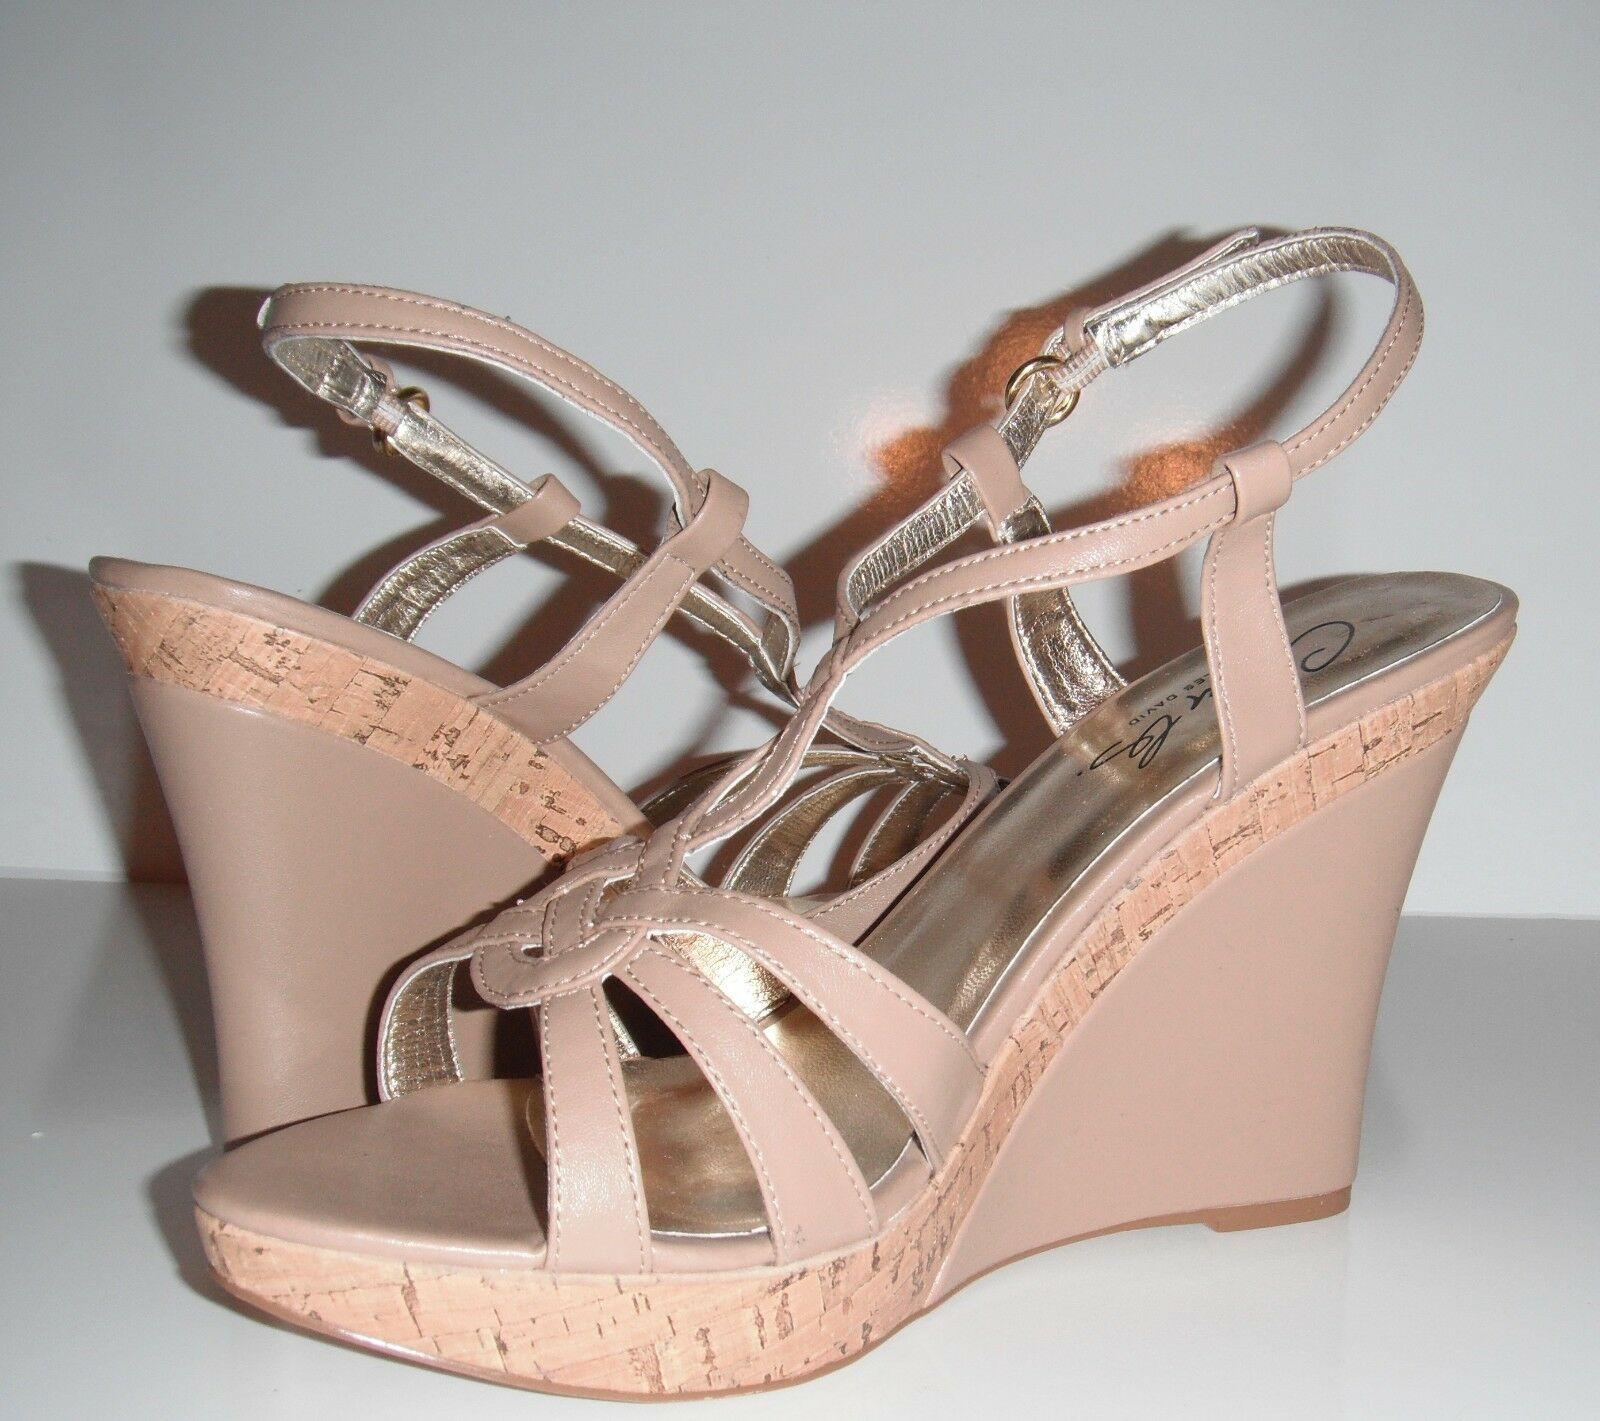 New Charles by Charles David Luck 2 Tan Leather Cork Wedge Platform shoes sz 11